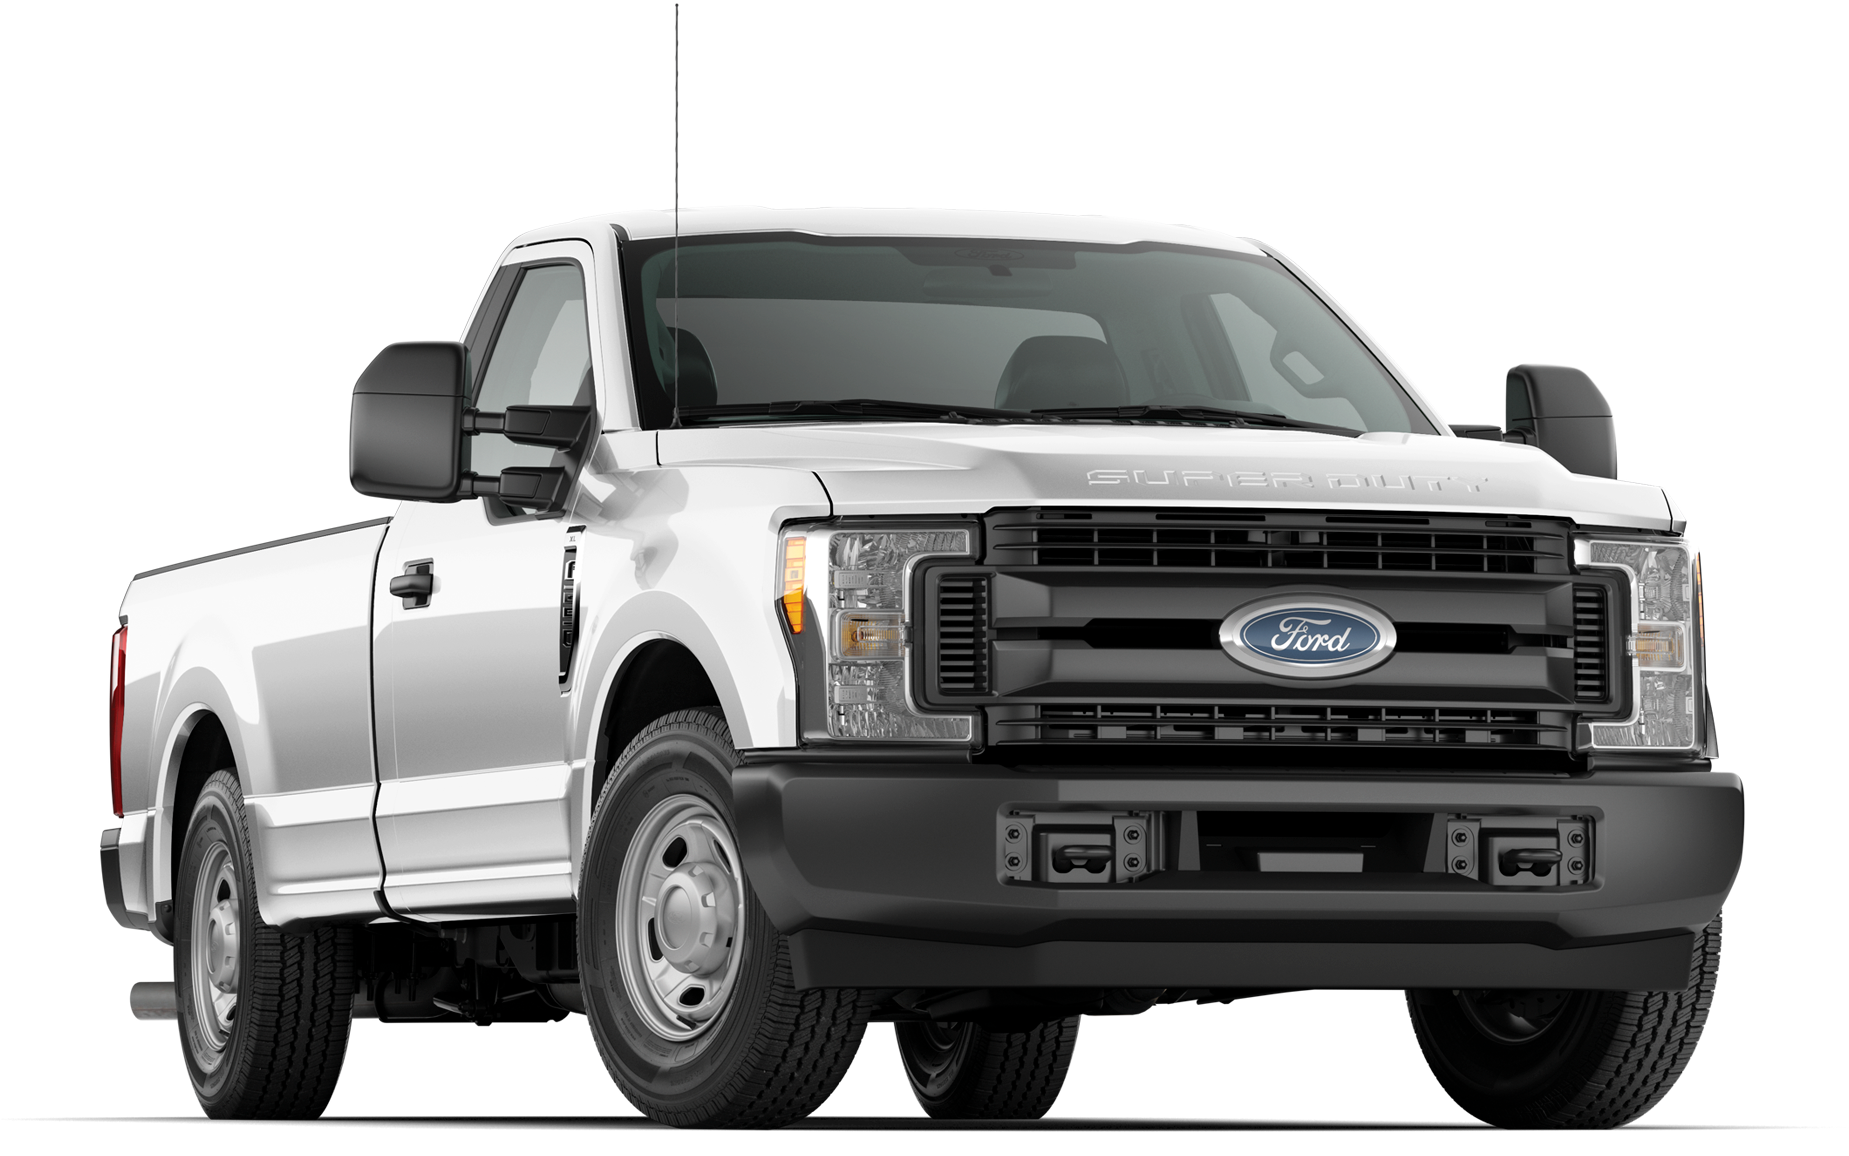 Cluster Moreover Ford F 250 Sel Fuel Filter Location - wiring diagrams image free - gmaili.net